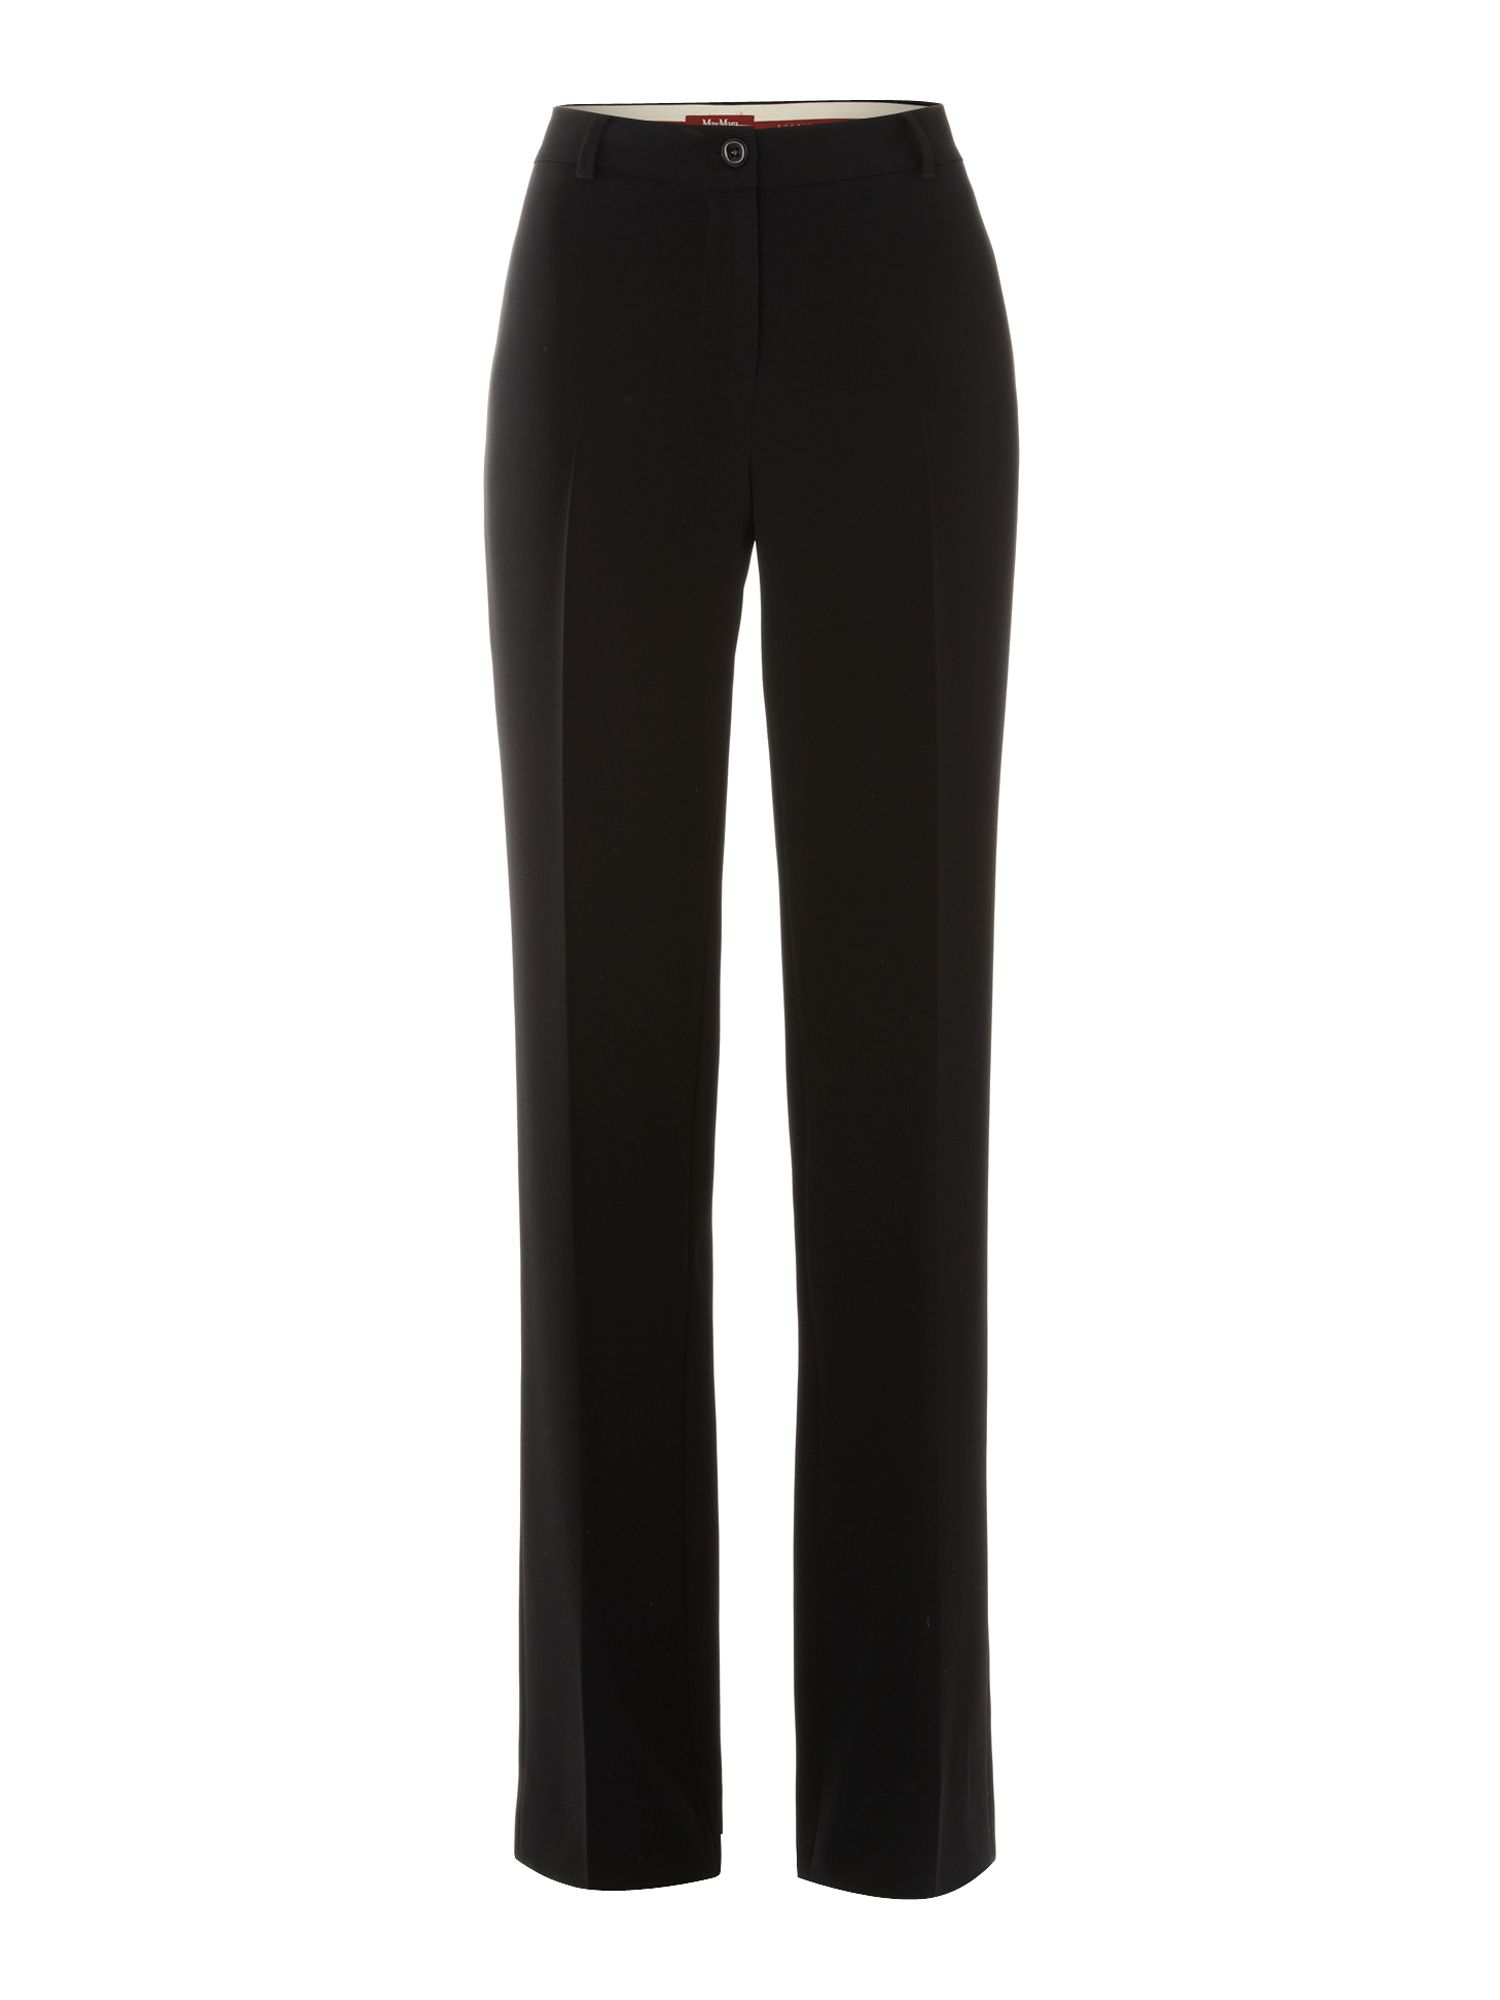 Natalin straight leg trousers